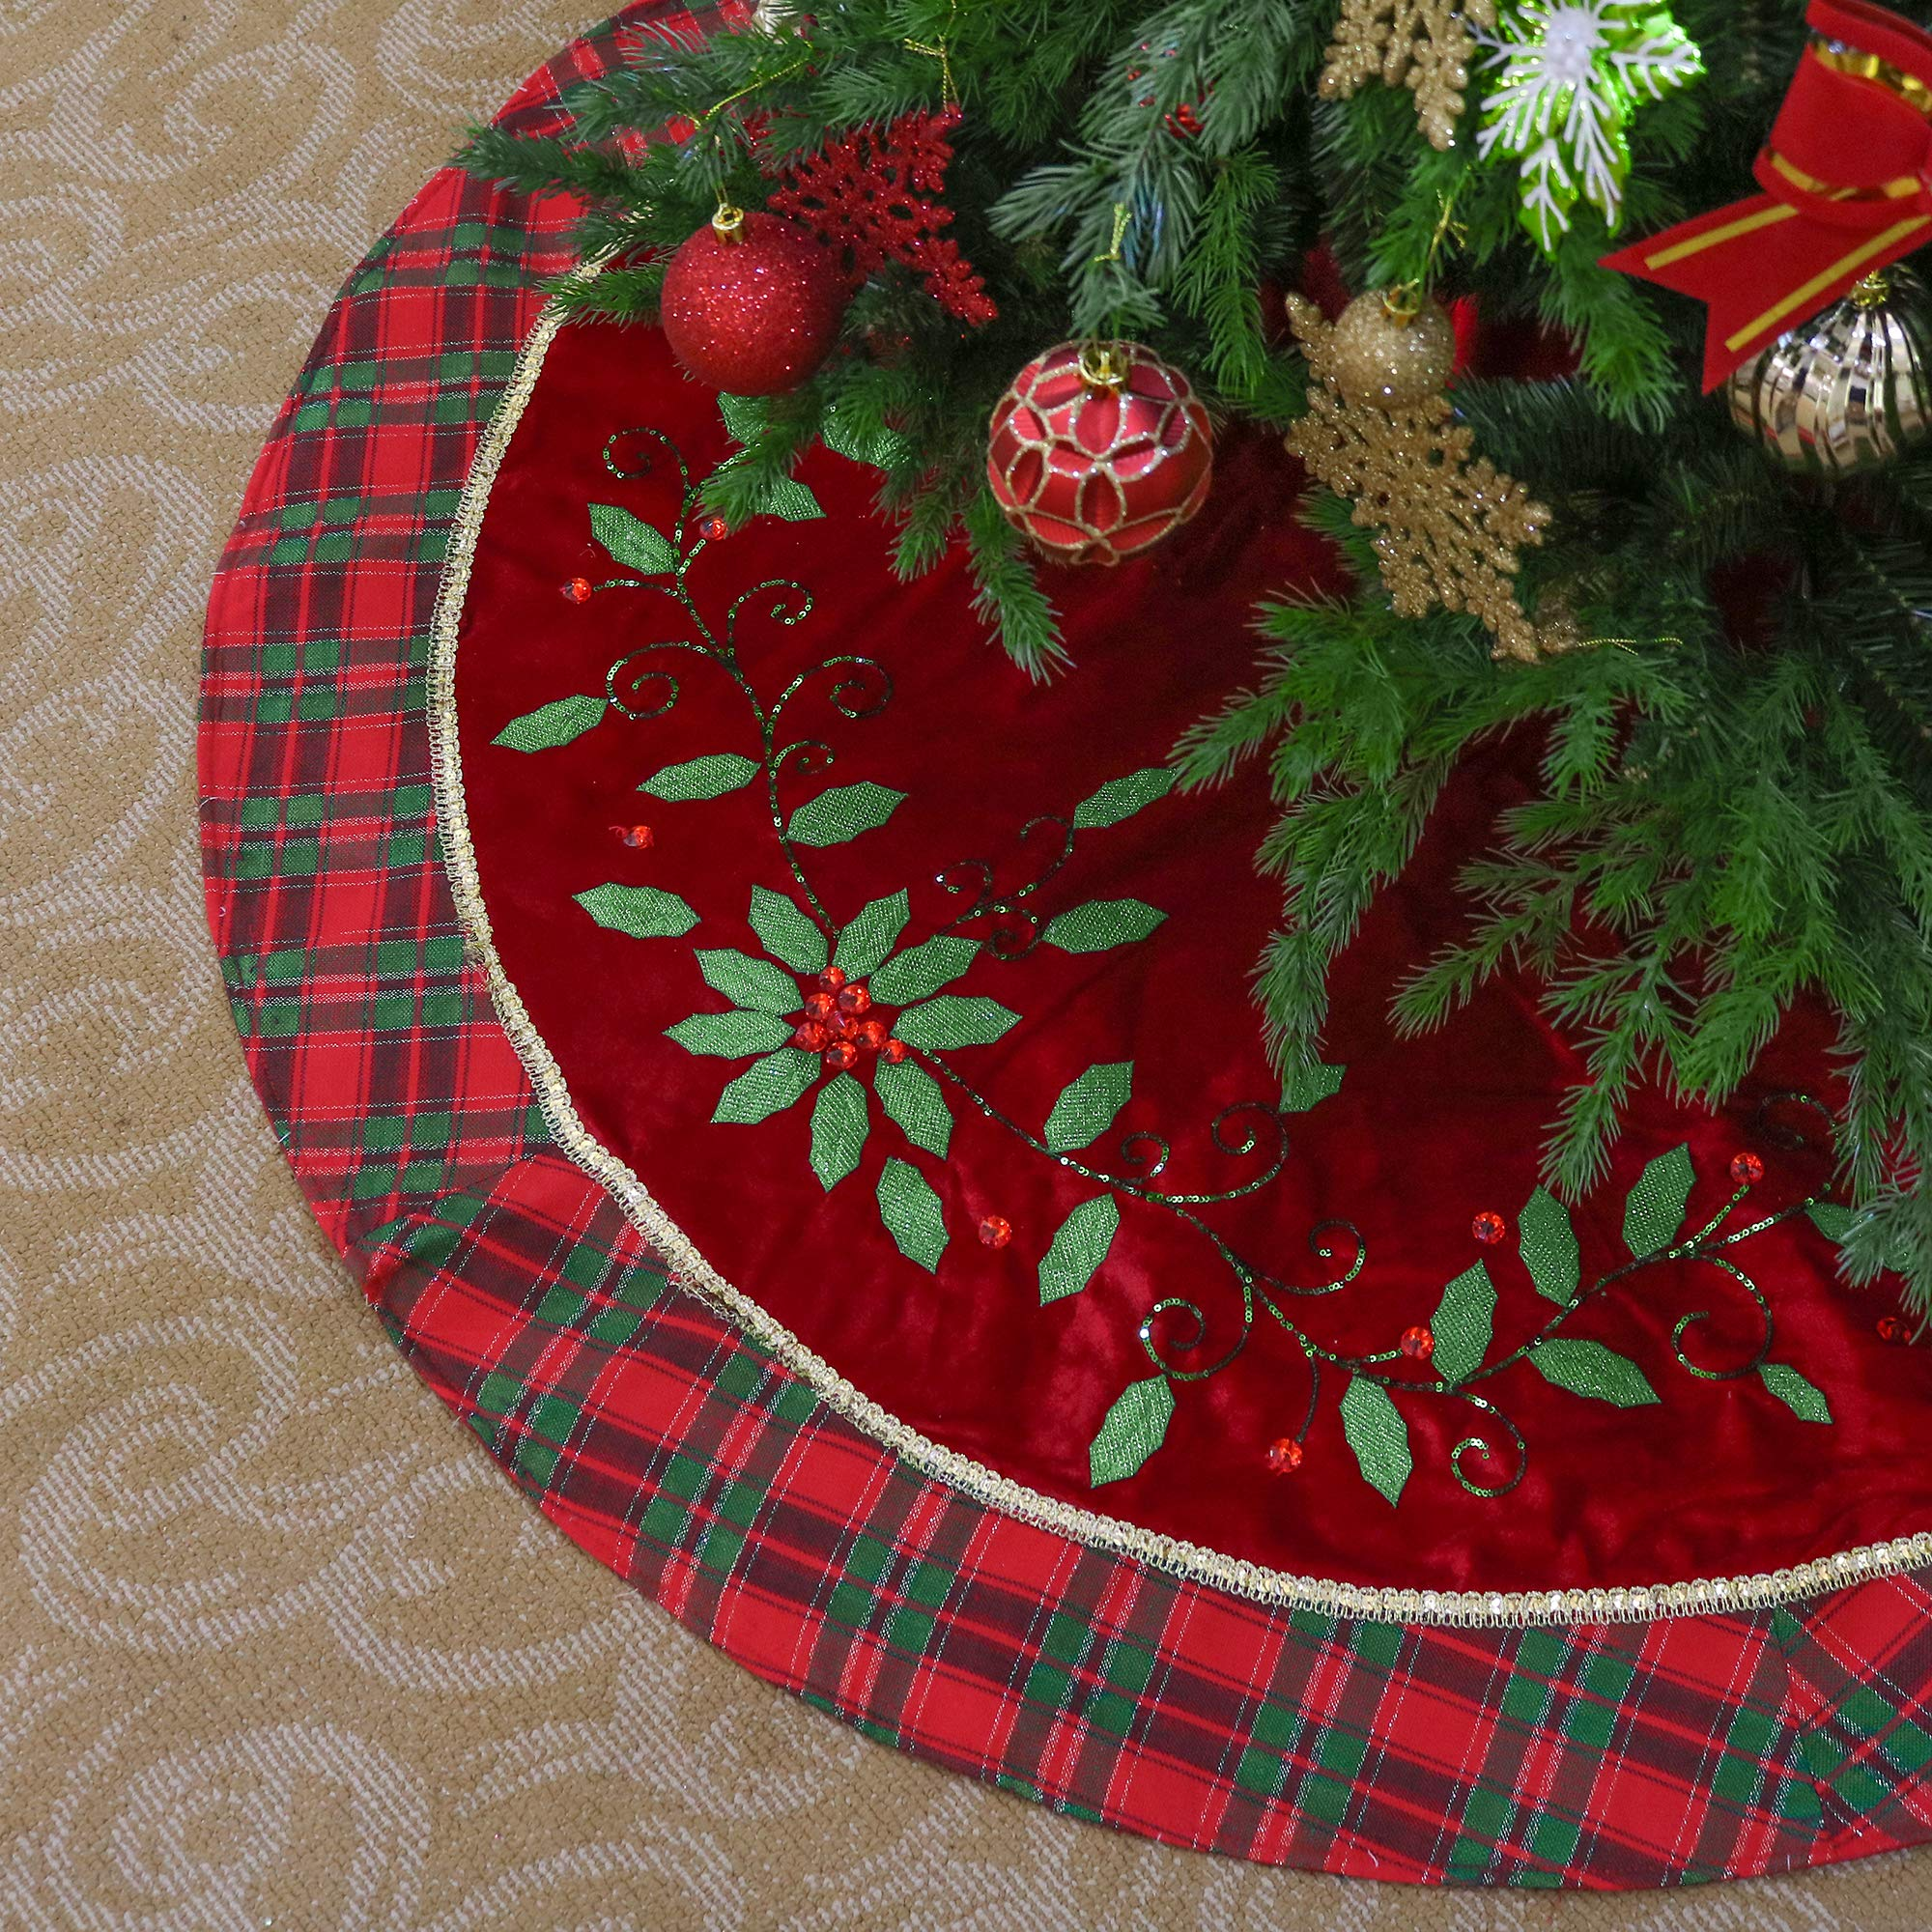 Valery Madelyn 48 Inch Traditional Red Green Gold Christmas Tree Skirt With Holly Leaves And Tartan Trim Themed With Christmas Ornaments Not